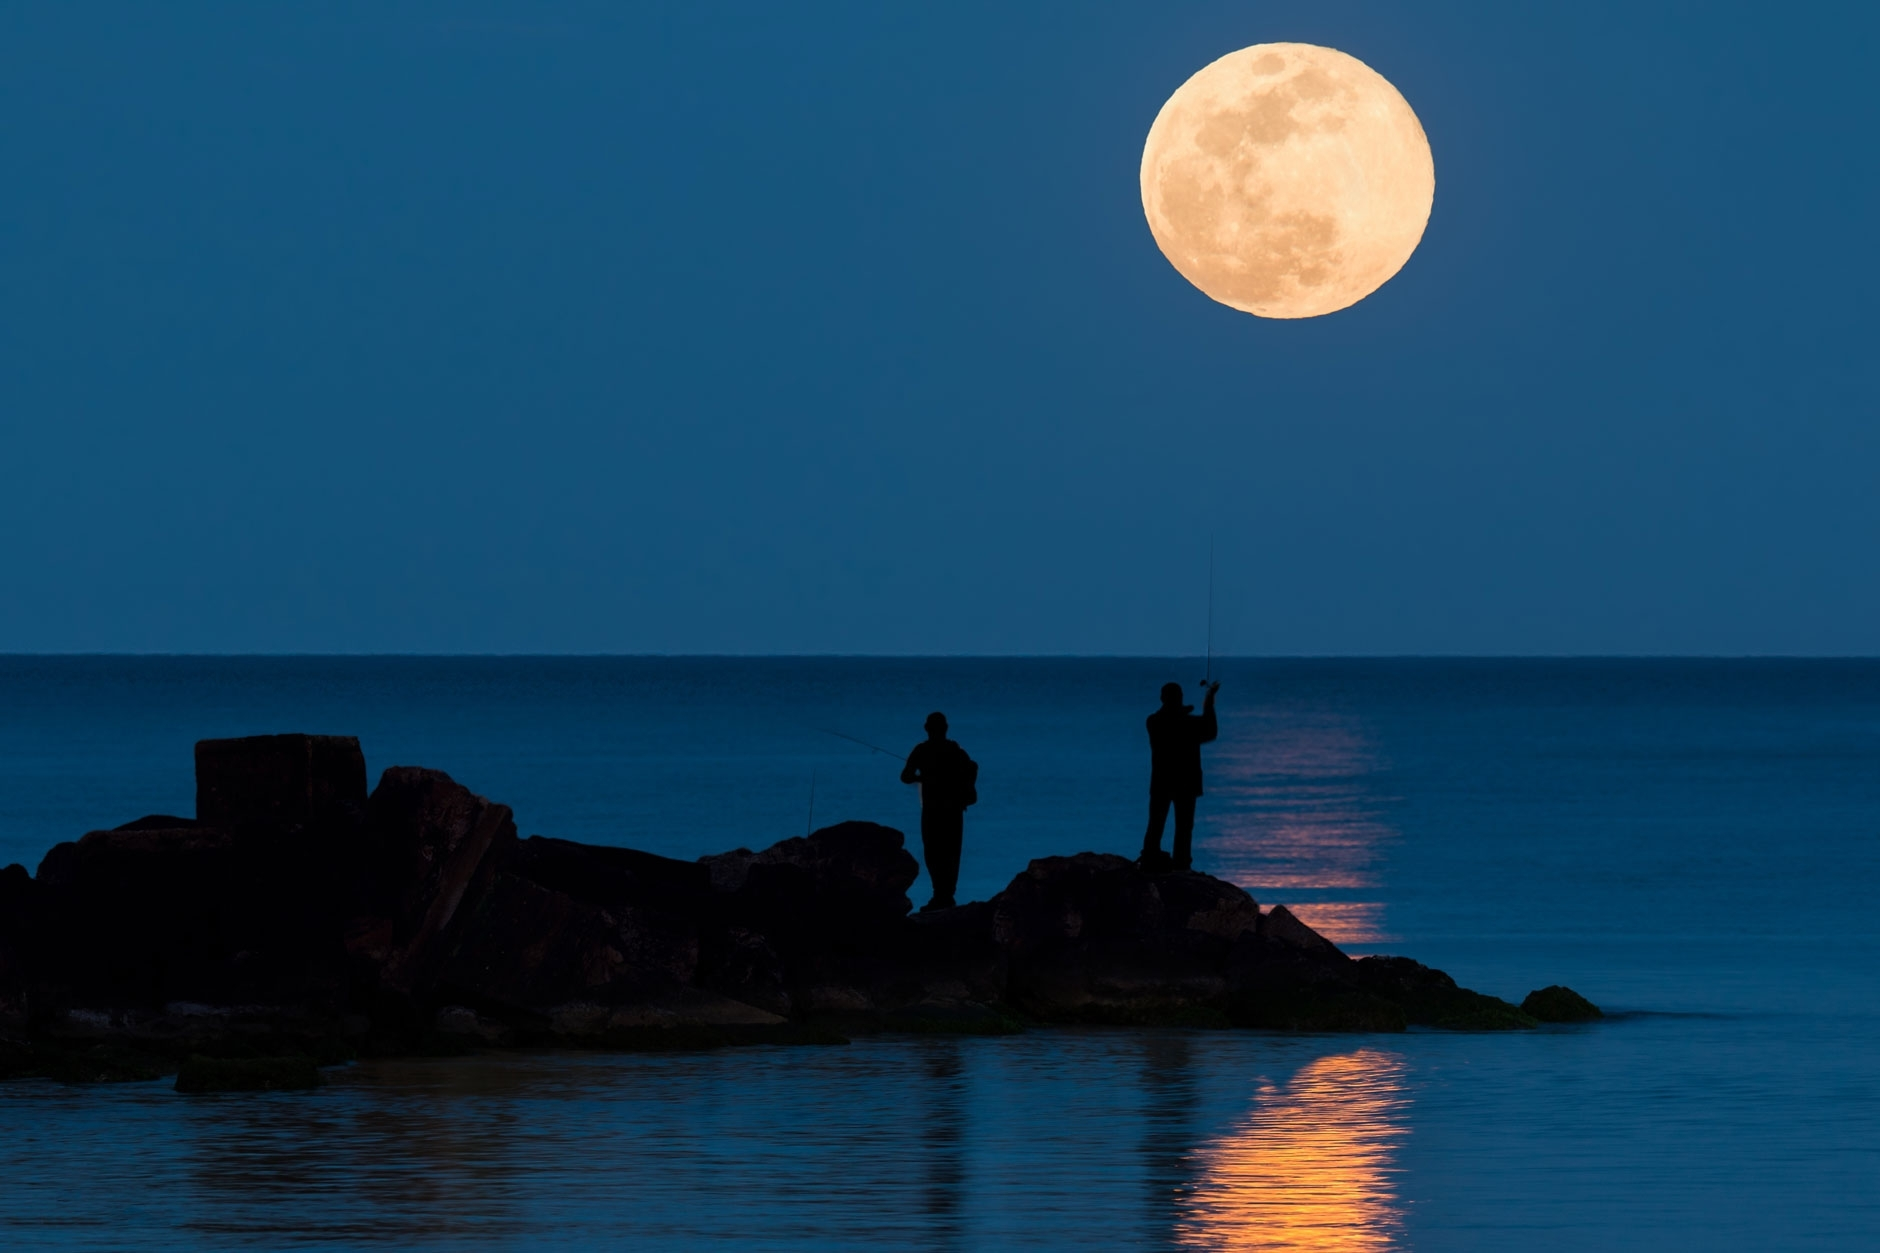 Do Phases Of The Moon Affect Fishing Conditions? - Farmers